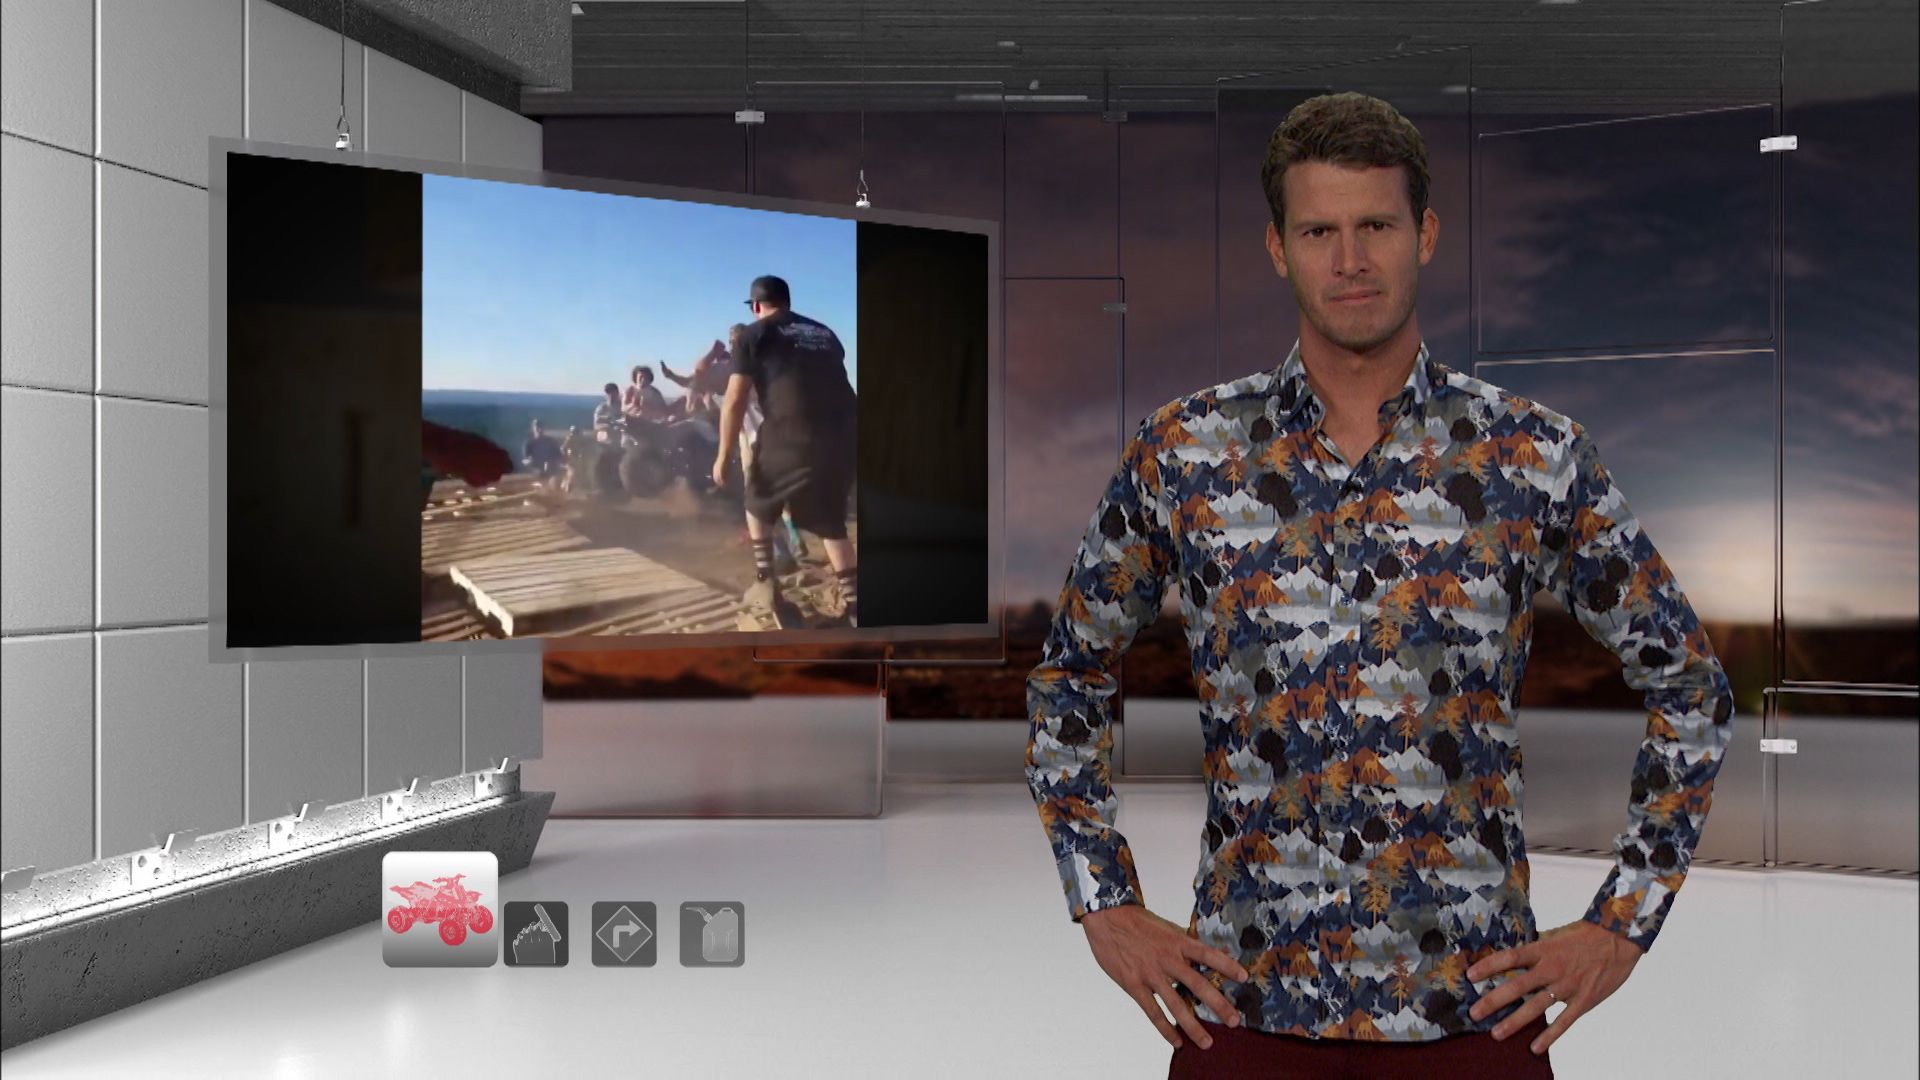 ATV Crash Tosh0 Video Clip Comedy Central